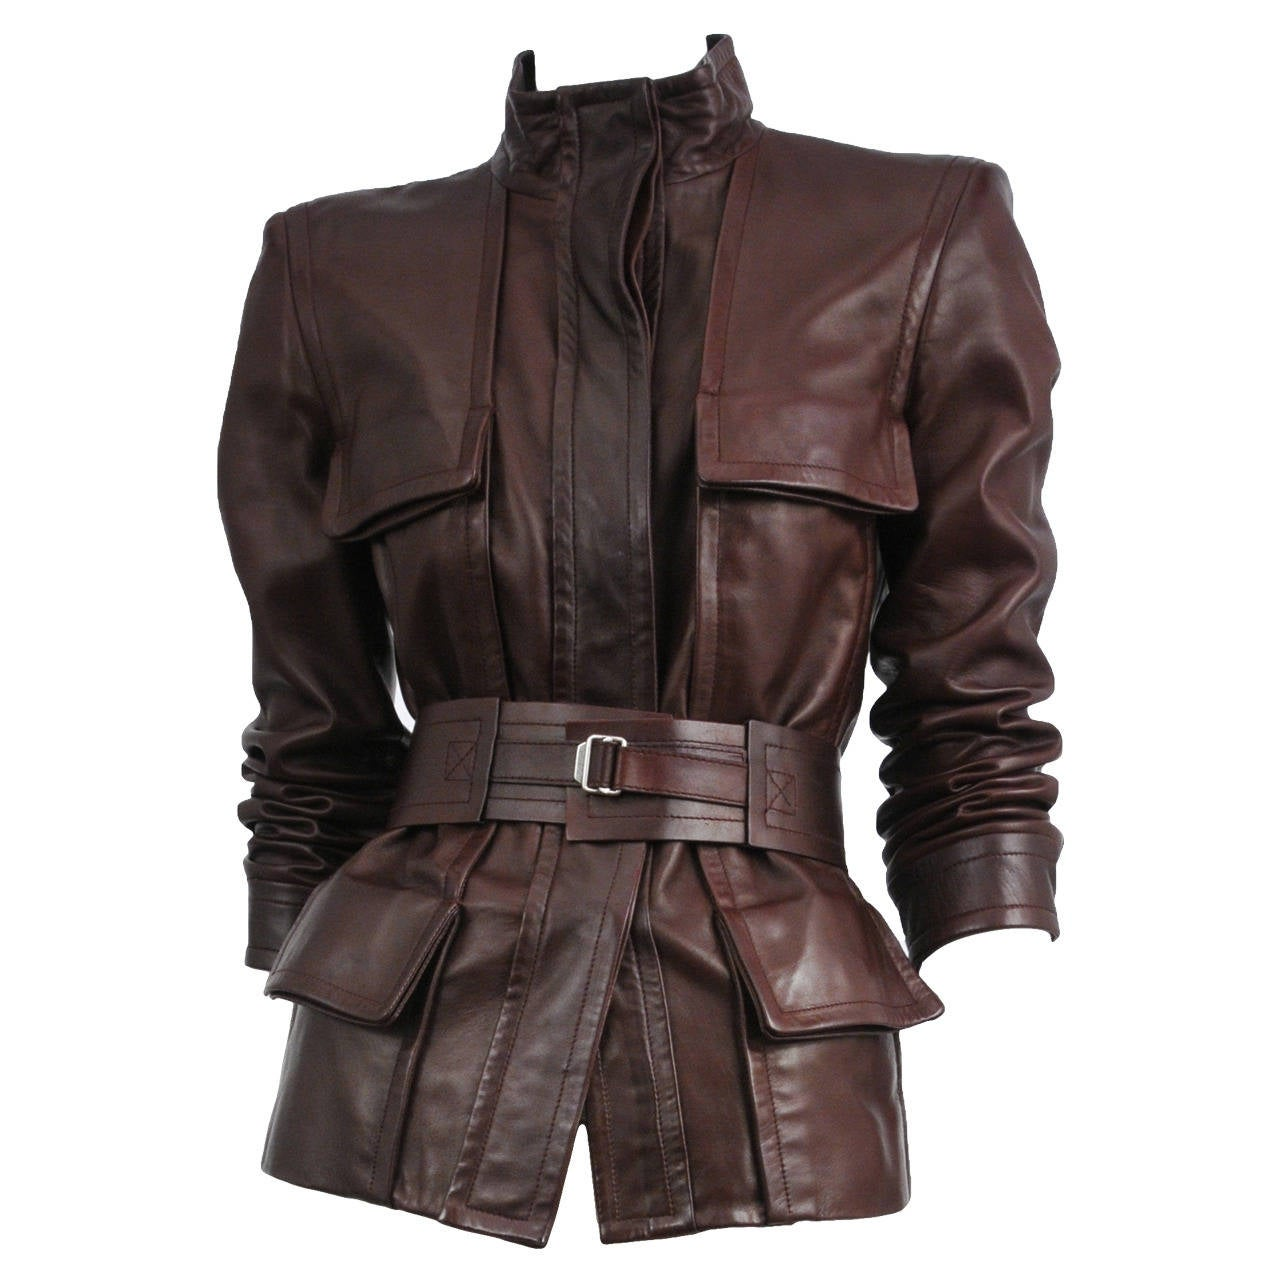 Tom Ford Burgundy Leather Belted Jacket